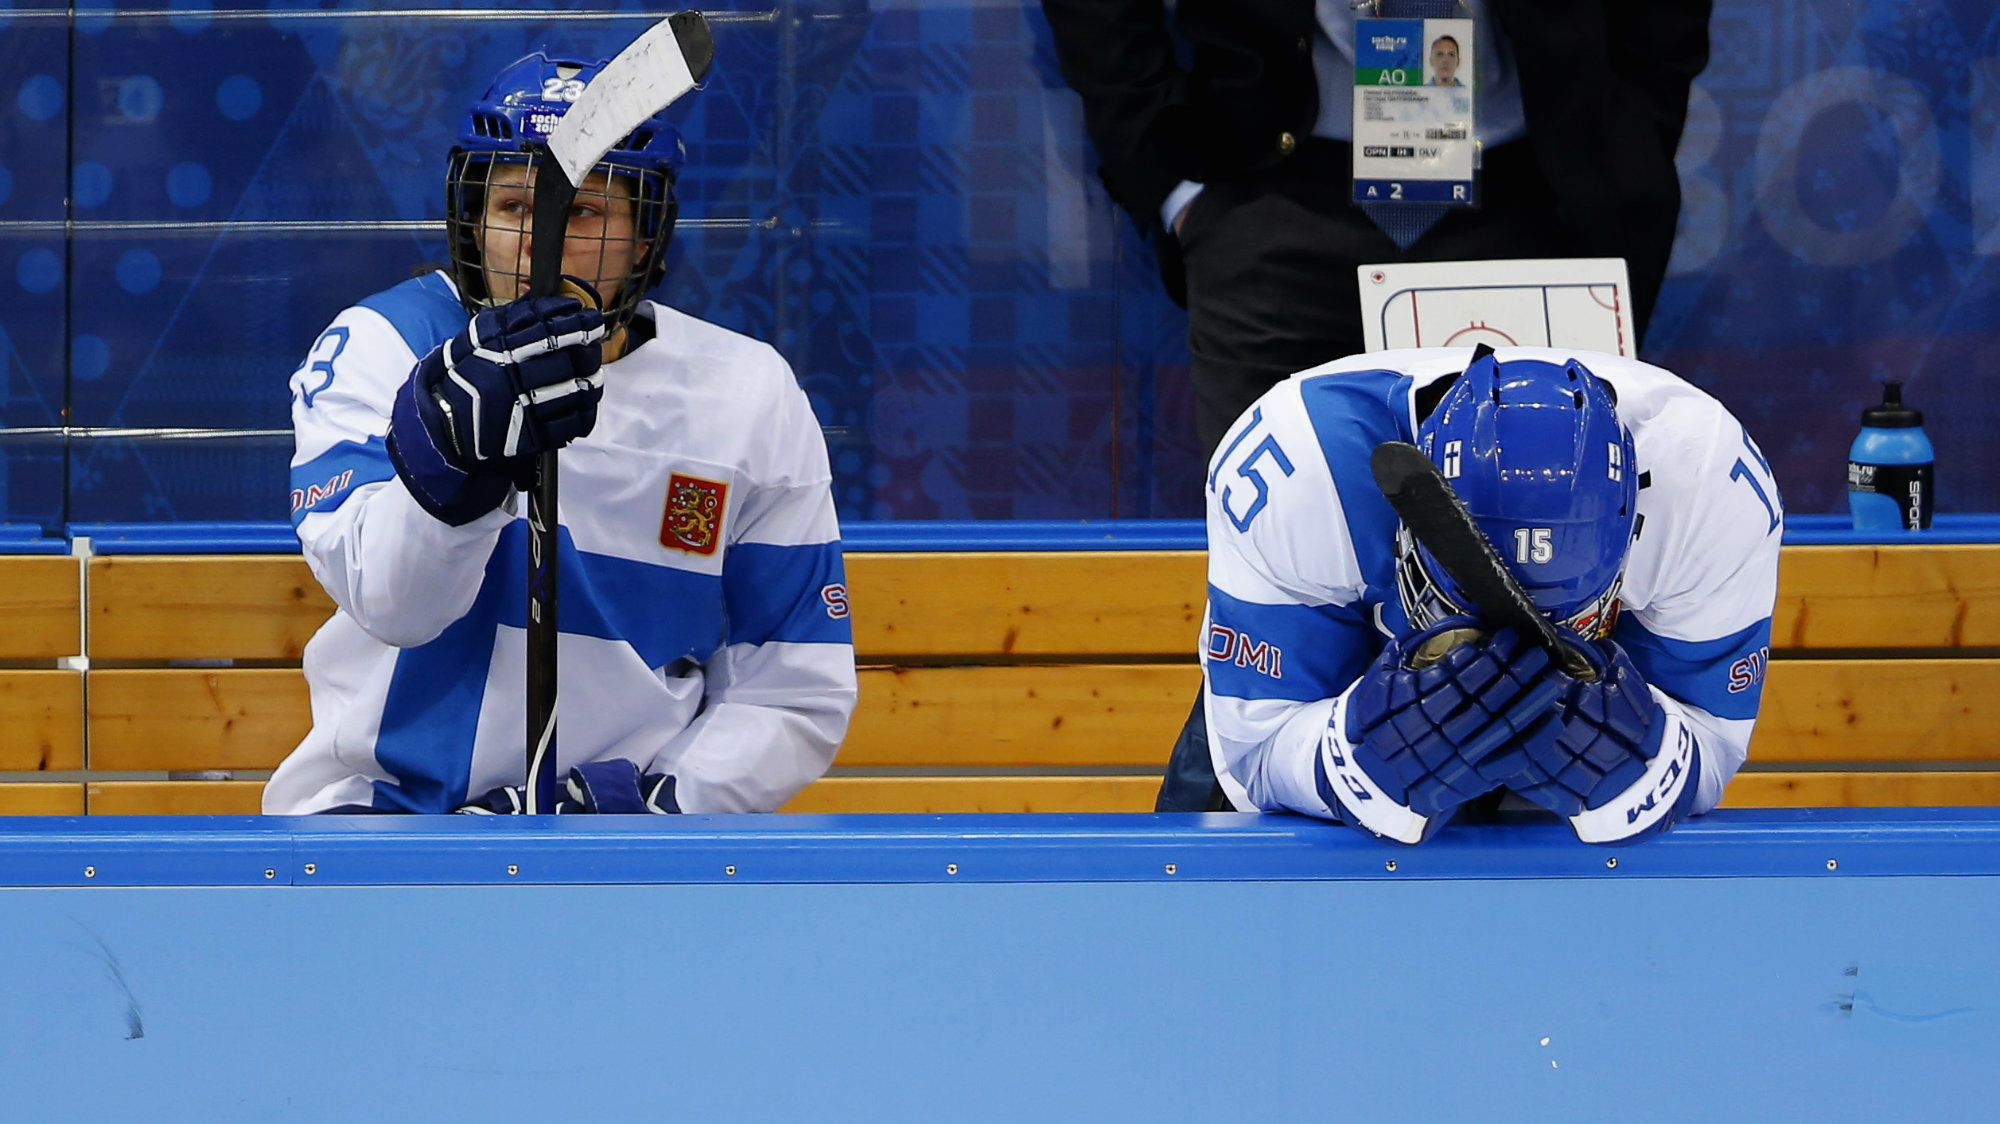 inland's Nina Tikkinen and Minttu Tuominen react after losing to Sweden in their women's ice hockey playoffs quarter-final game at the Sochi 2014 Winter Olympic Games.